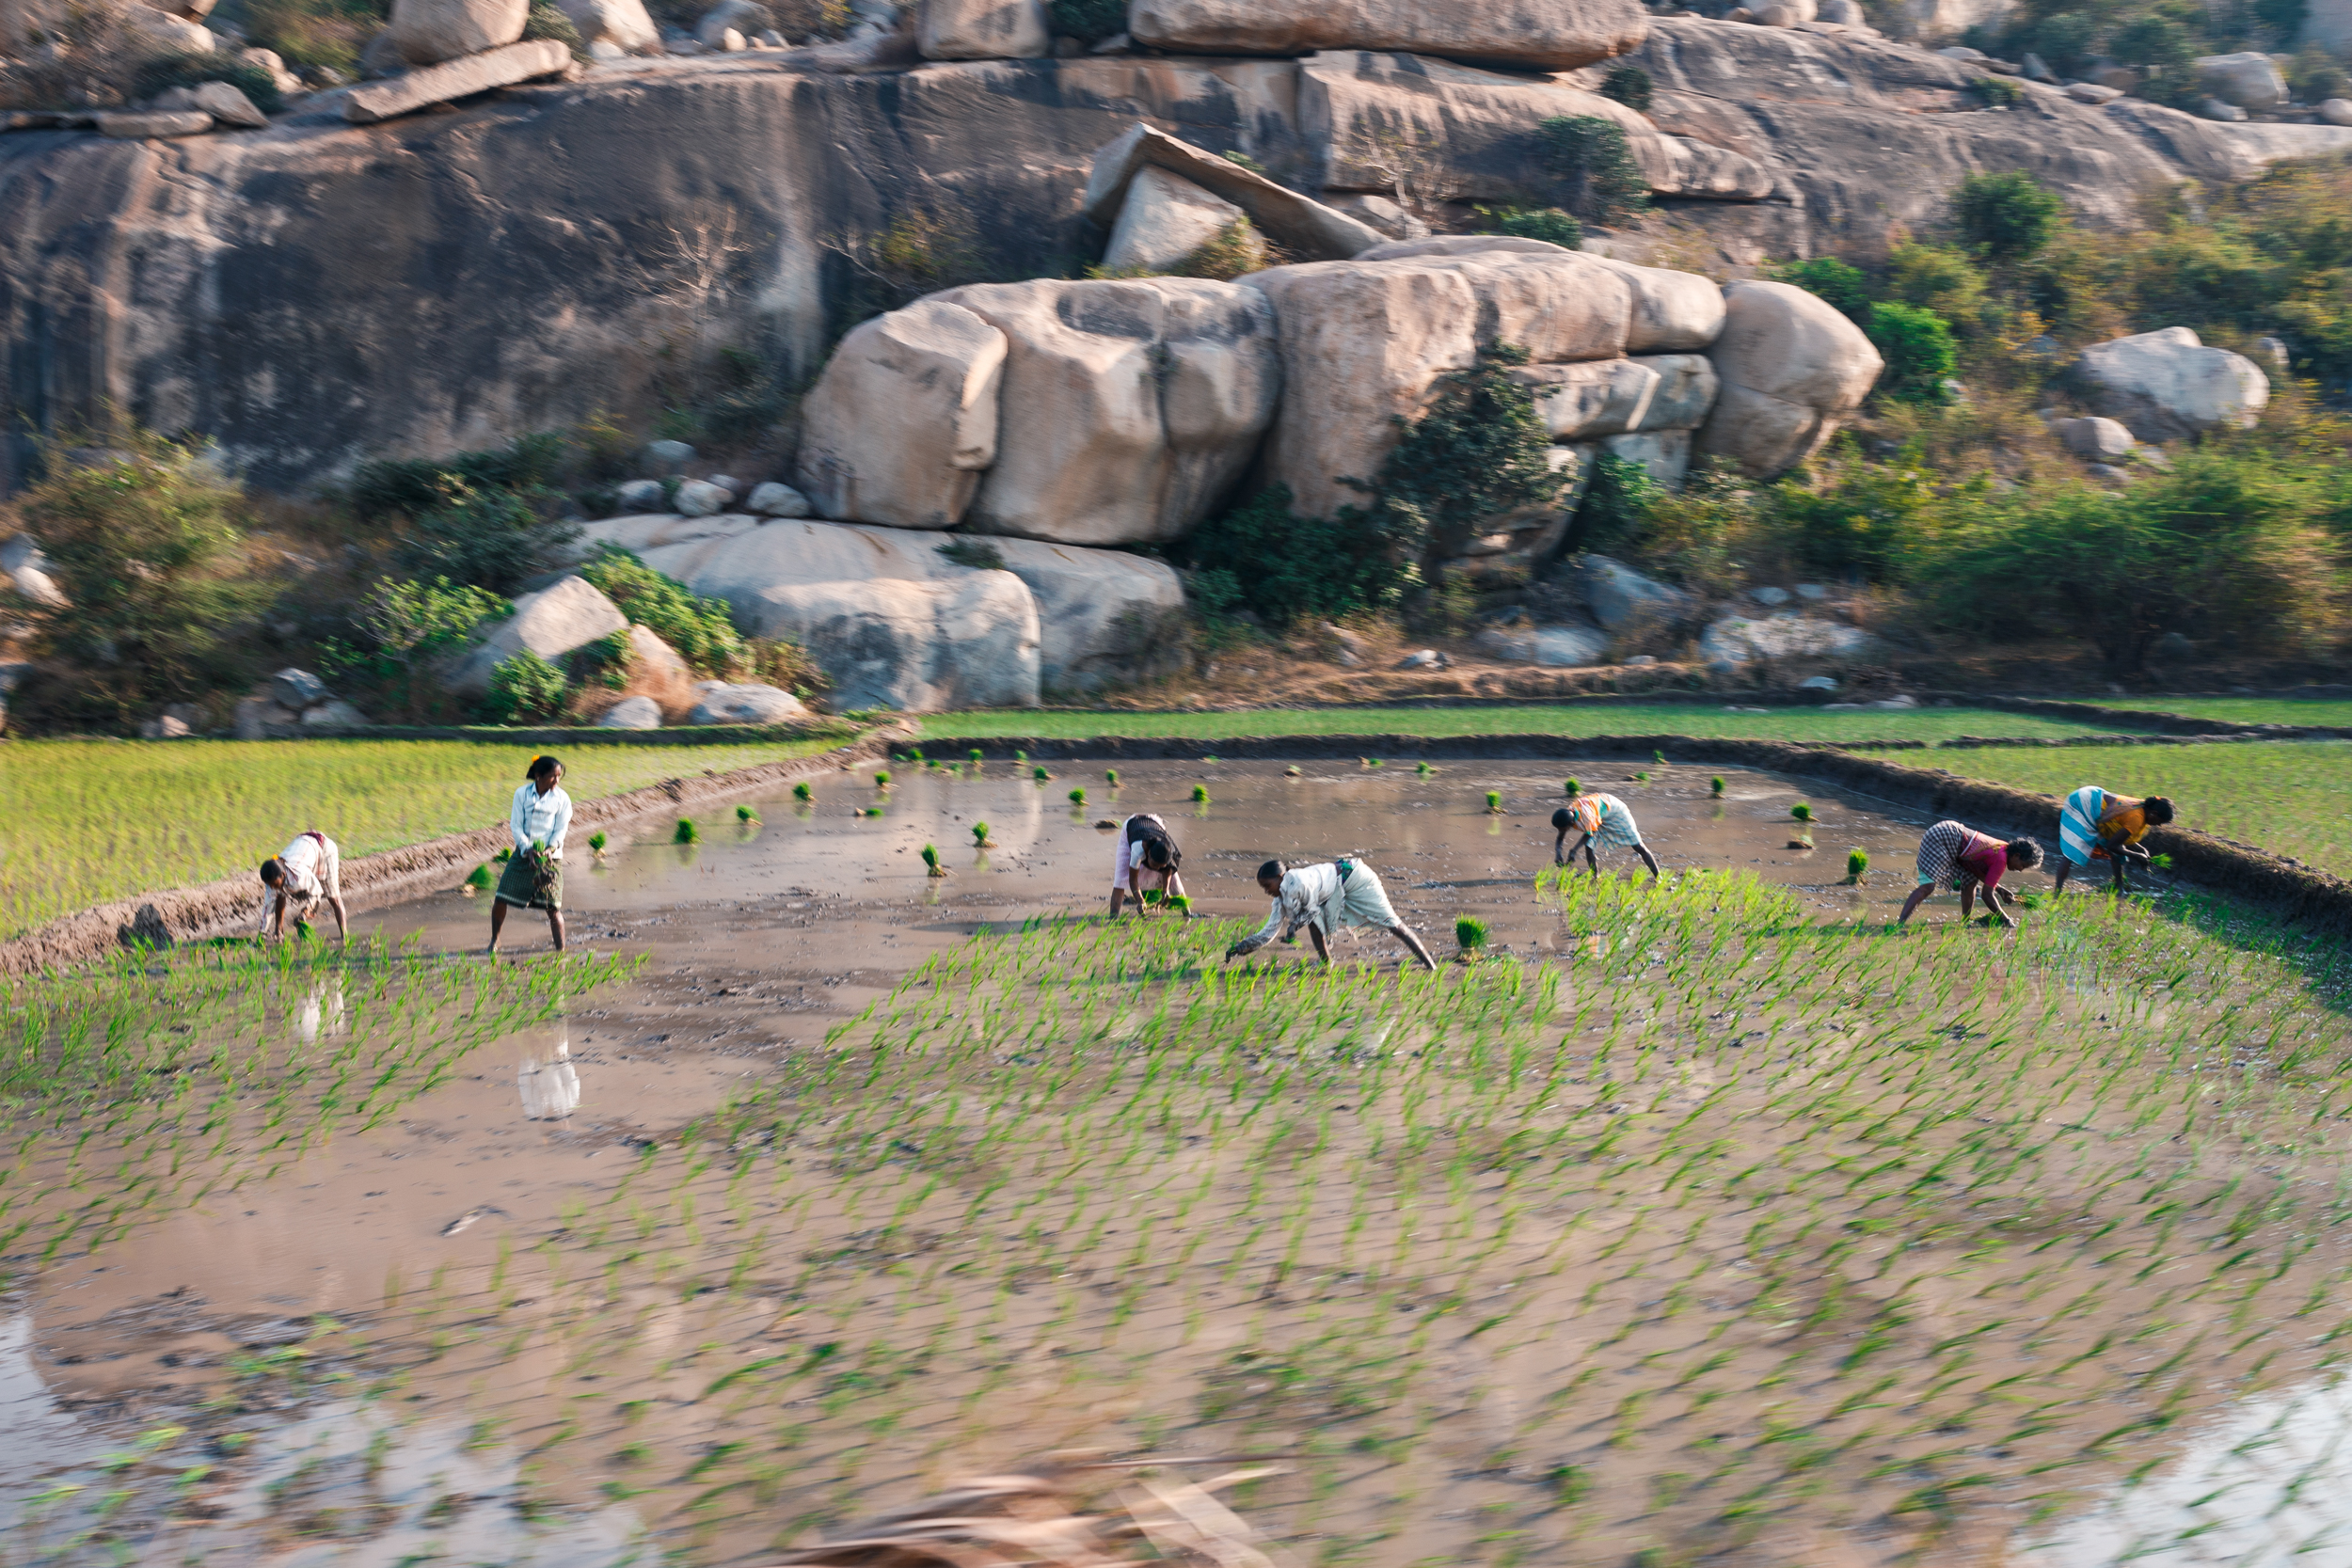 Workers harvesting rice in the paddies on Hampi Island.